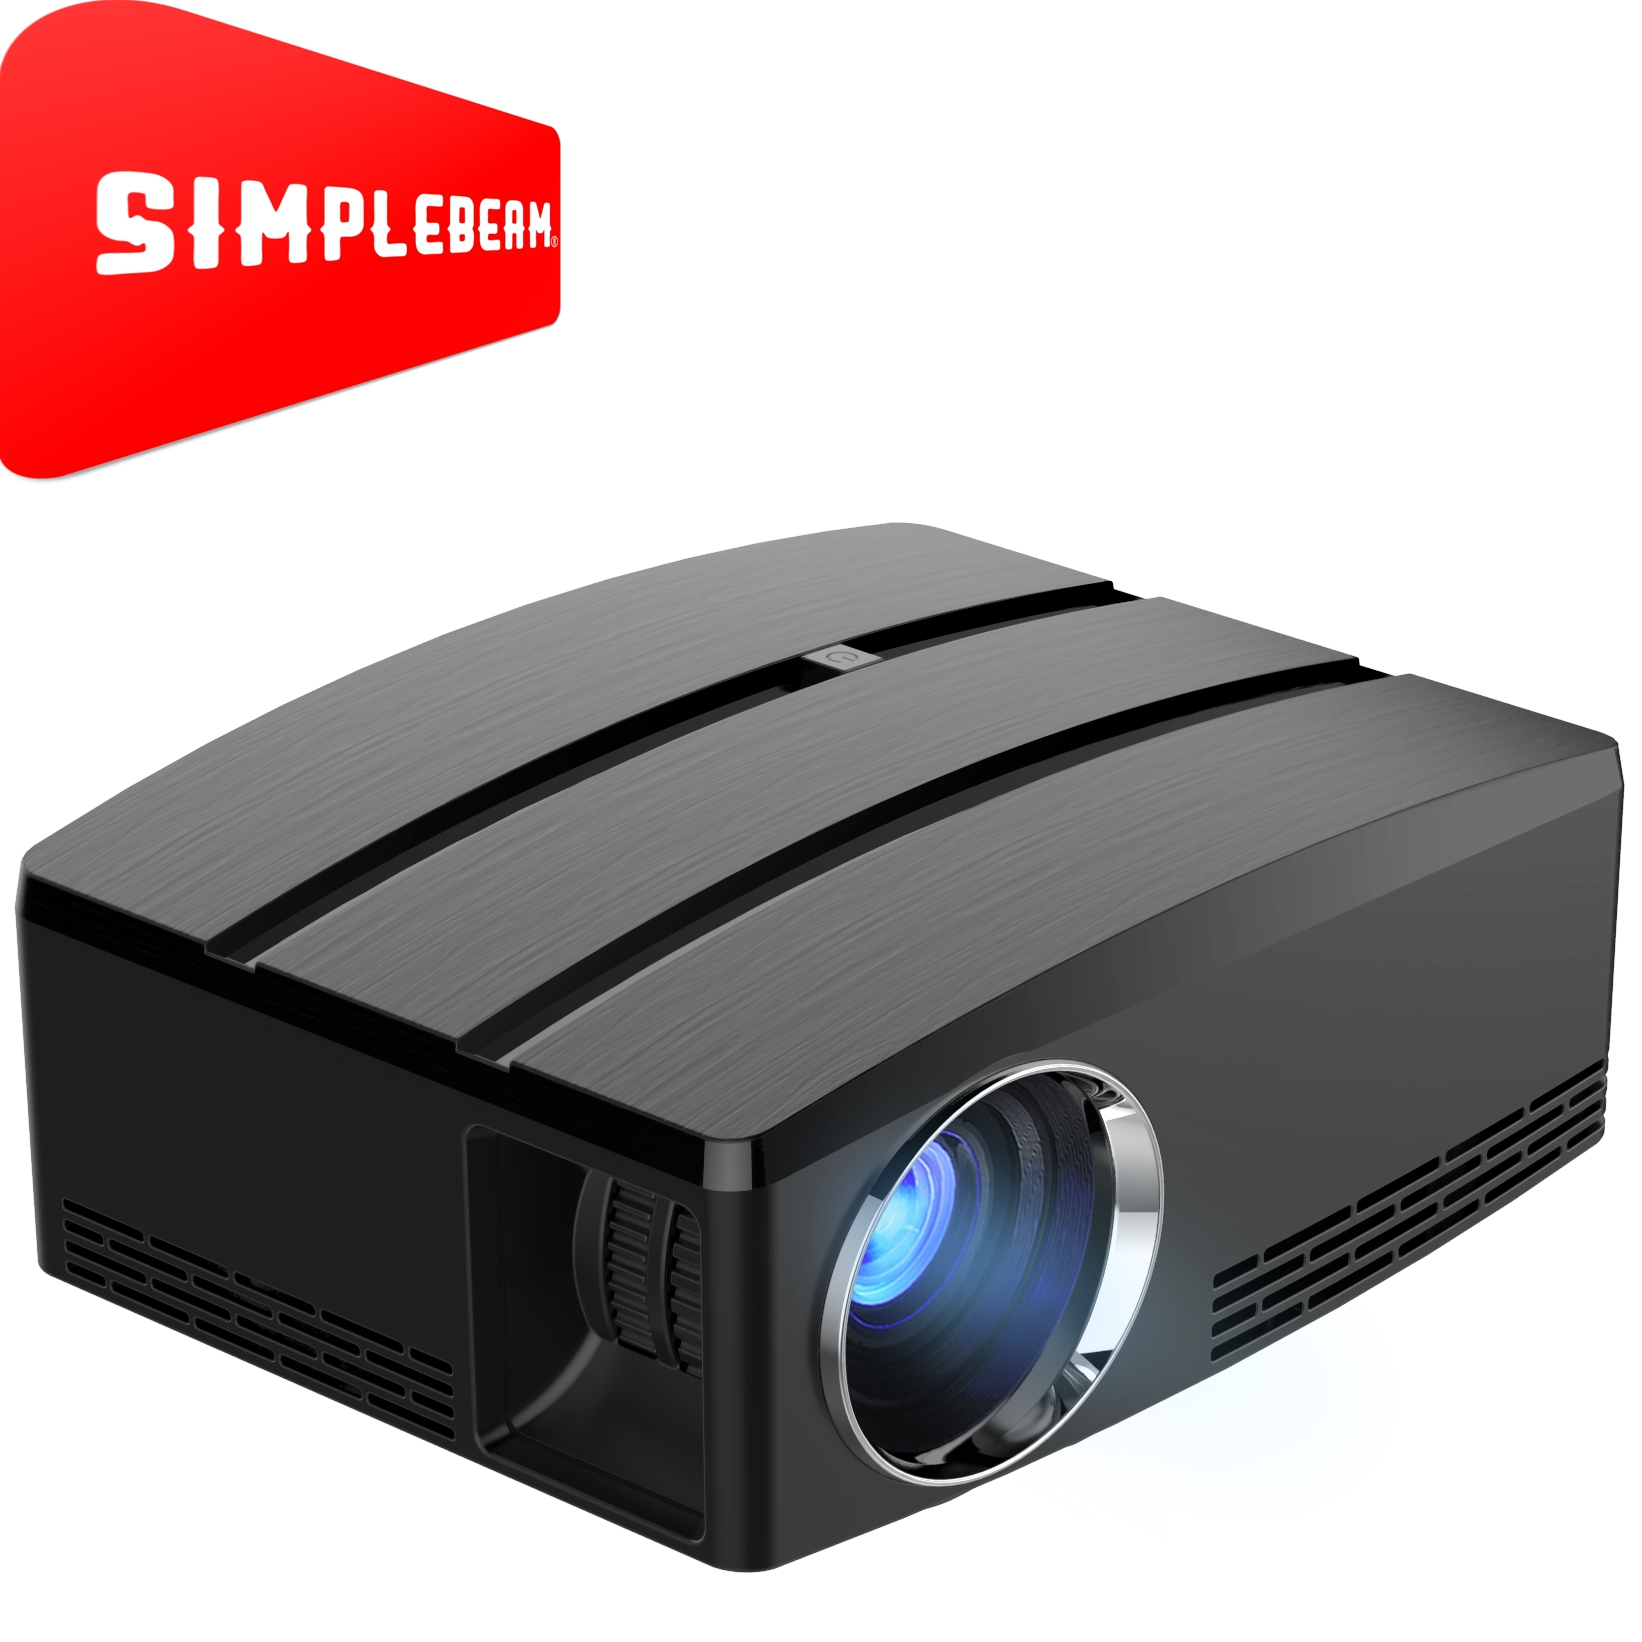 1800 Brightness Native HD LED TWS Video Home Theater Projectors GP80 for family entertainment